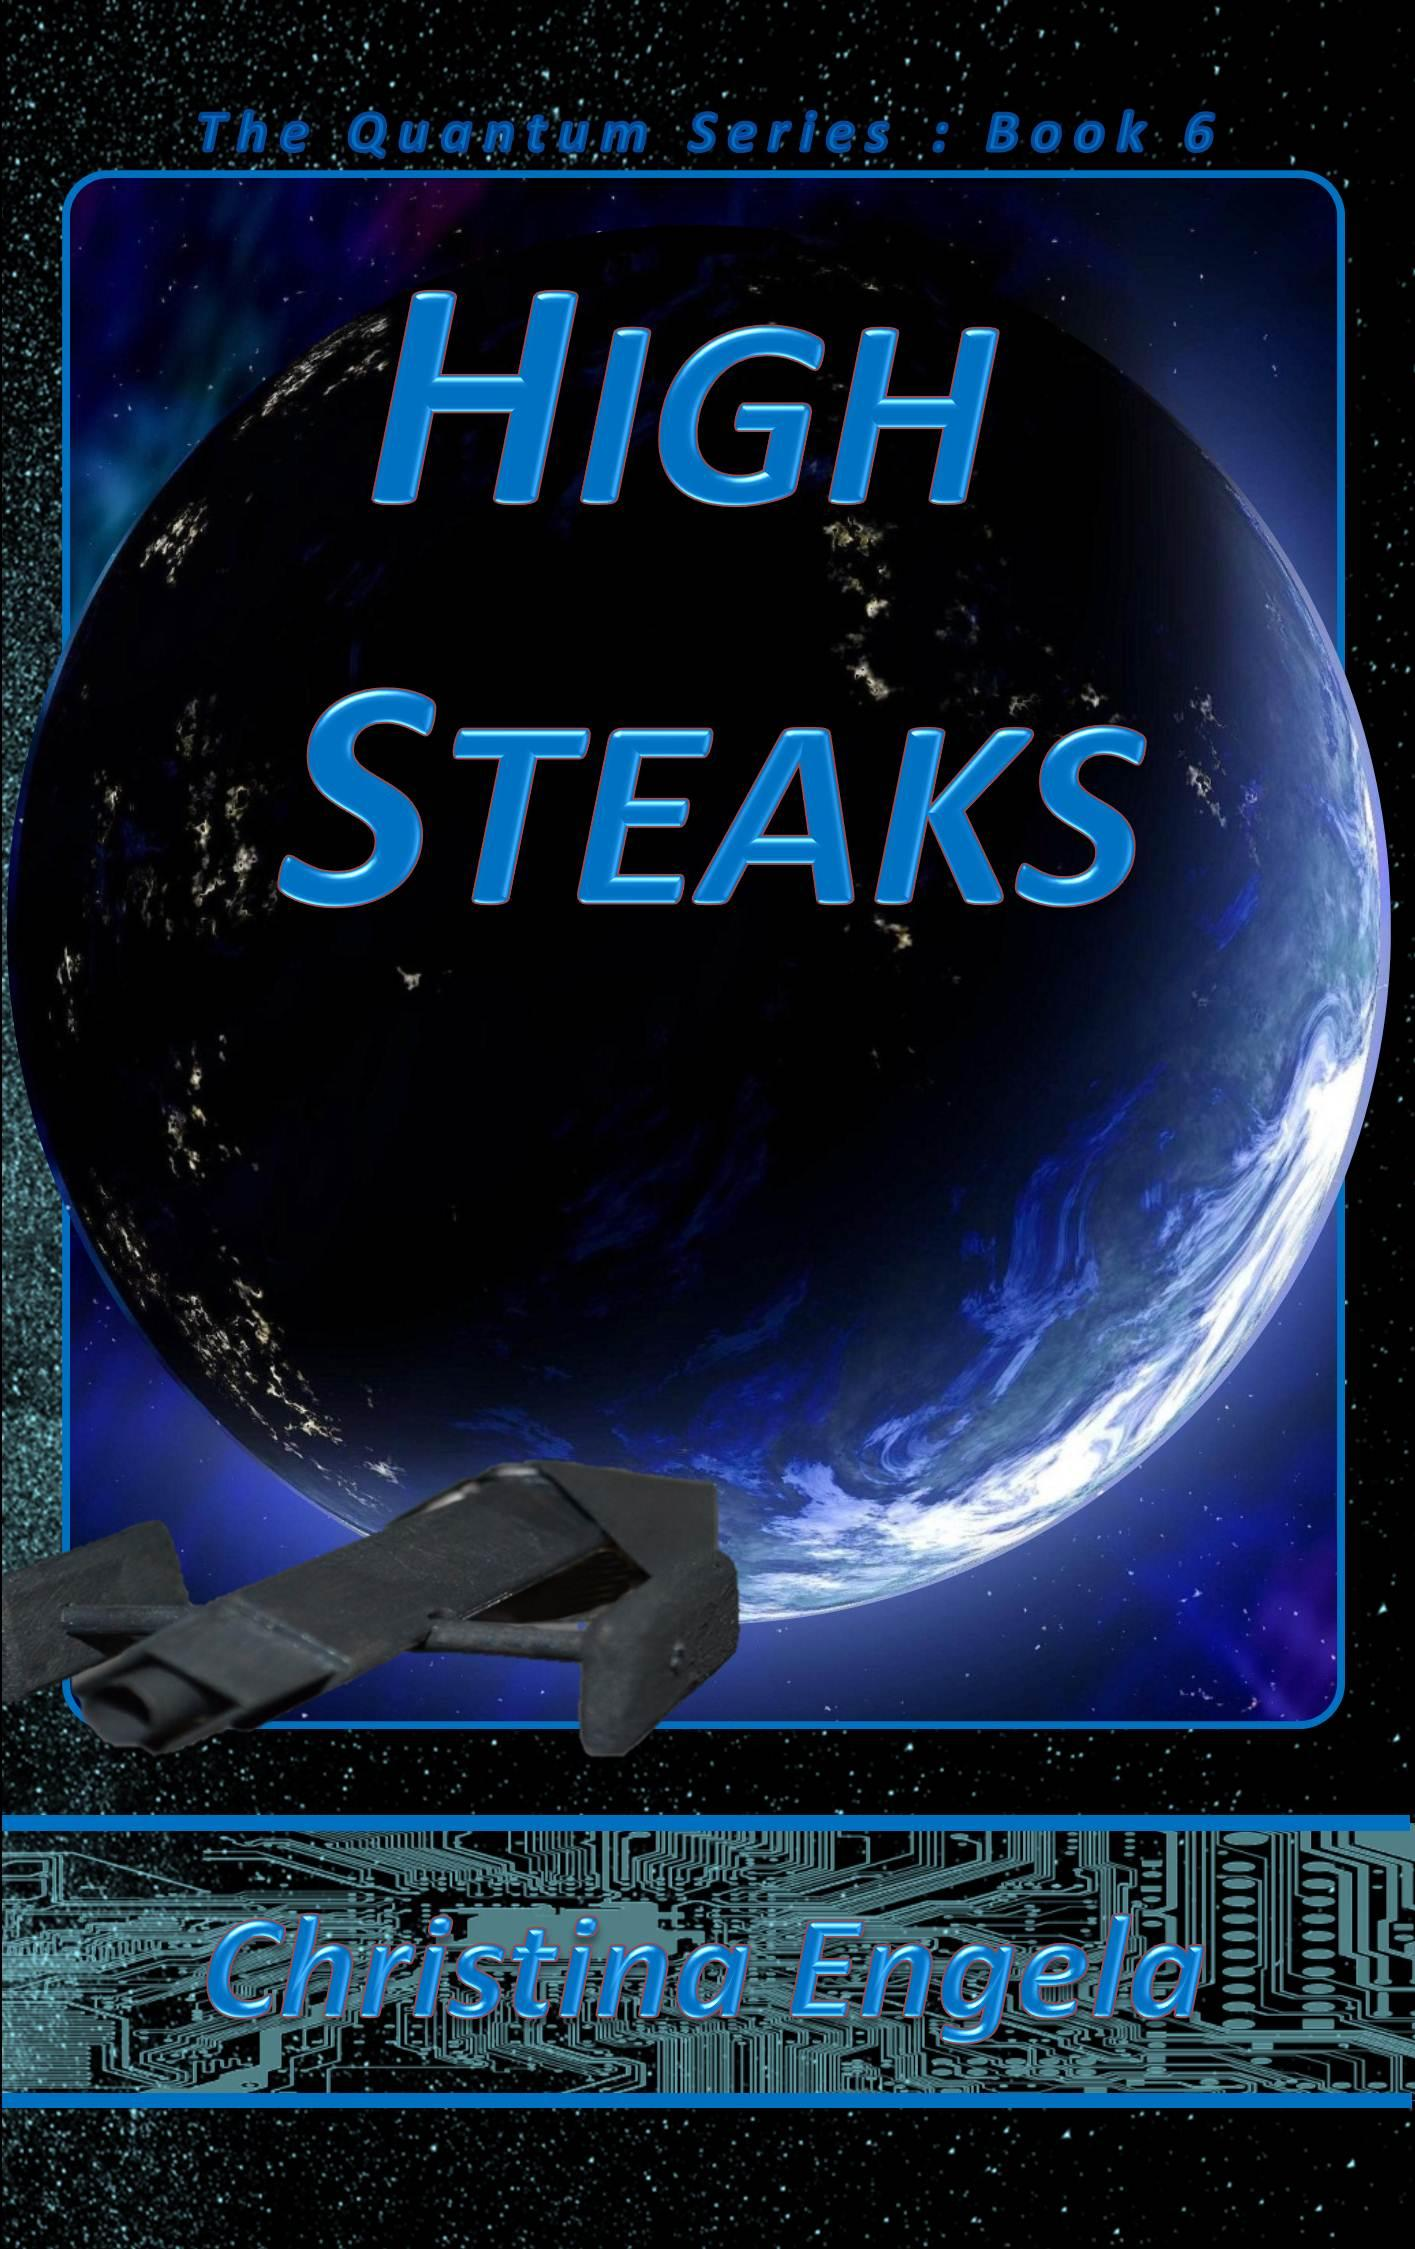 Quantum Series #6 - High Steaks 2019 - front